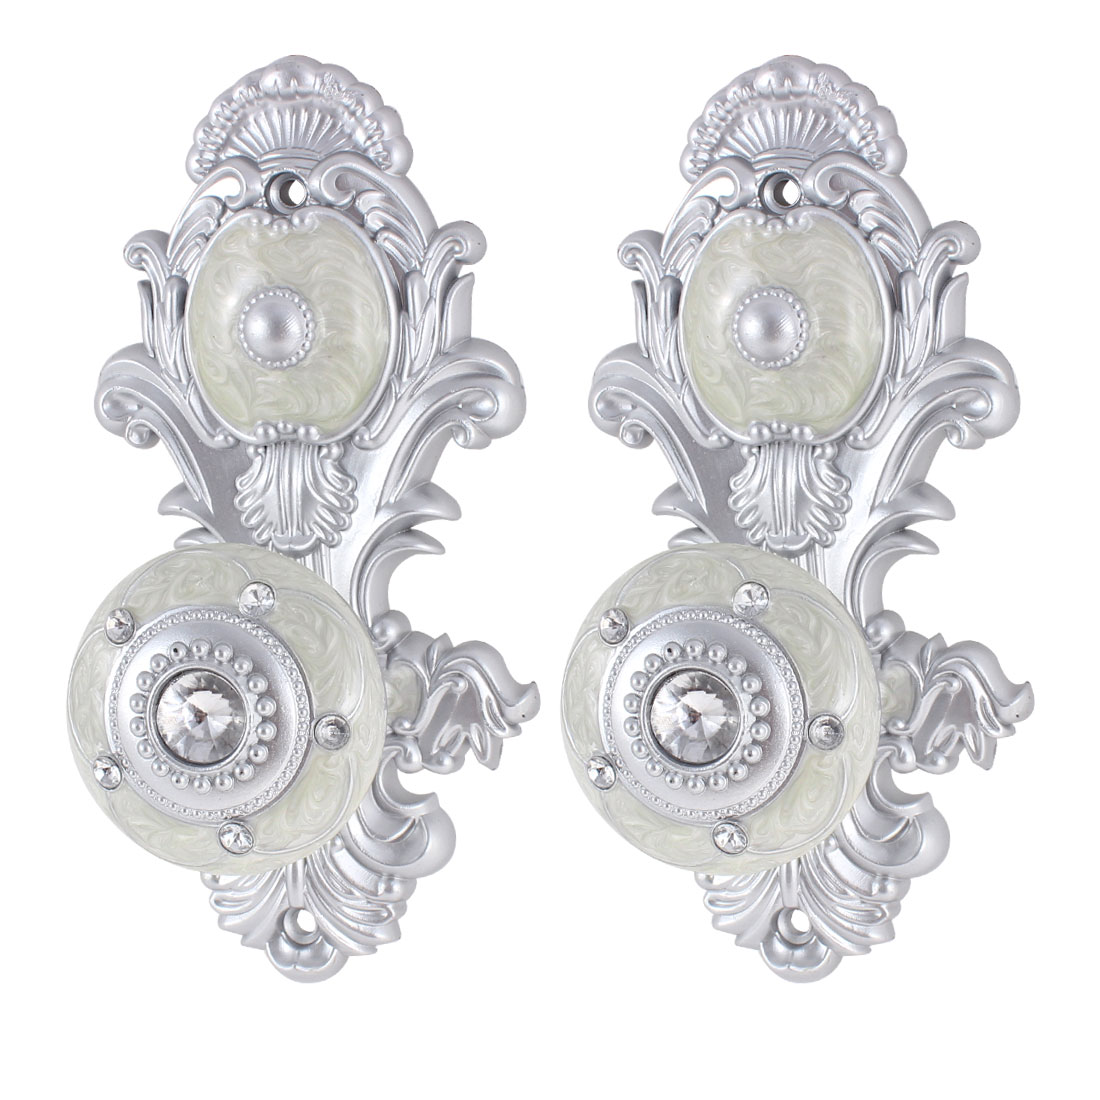 Faux Crystal Decor Curtain Hooks Drapery Tie Backs Hanger Pair